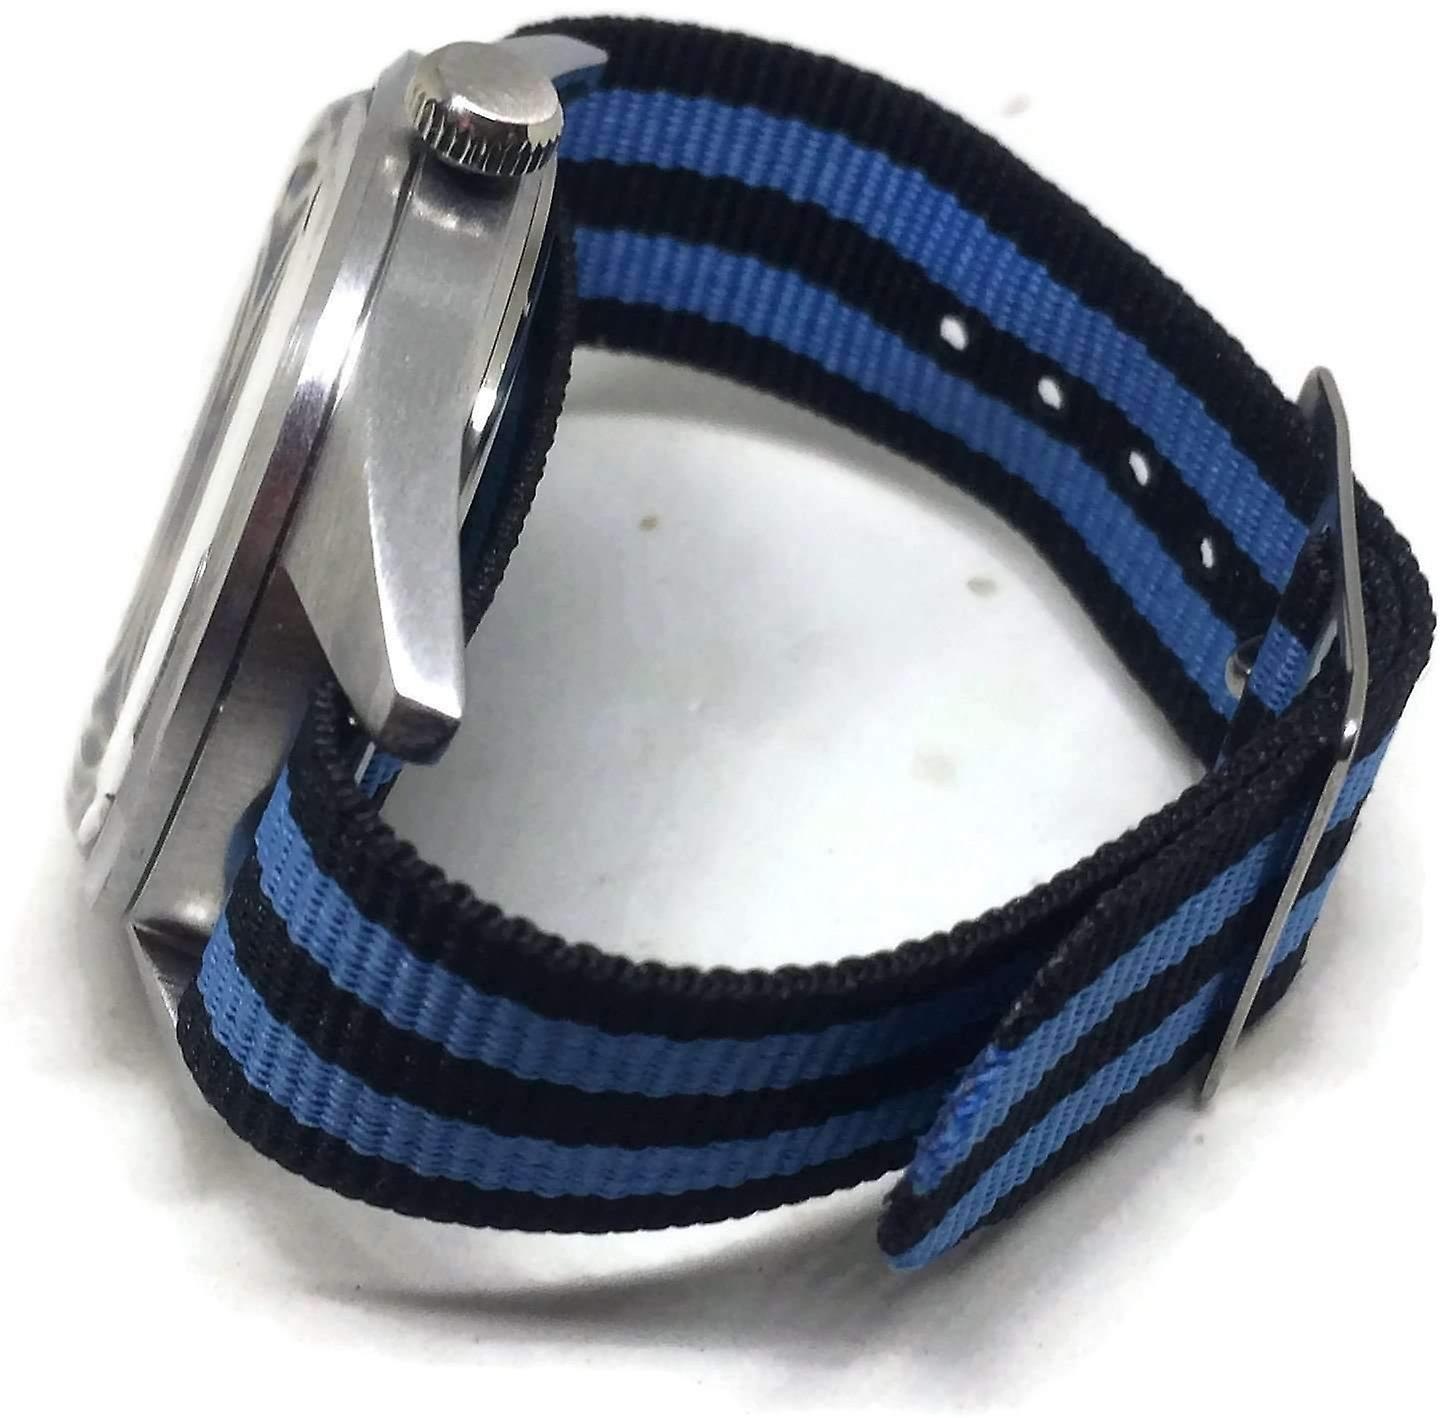 N.at.o zulu g10 watch strap 2 stripe blue and black 14mm to 20mm stainless steel buckle